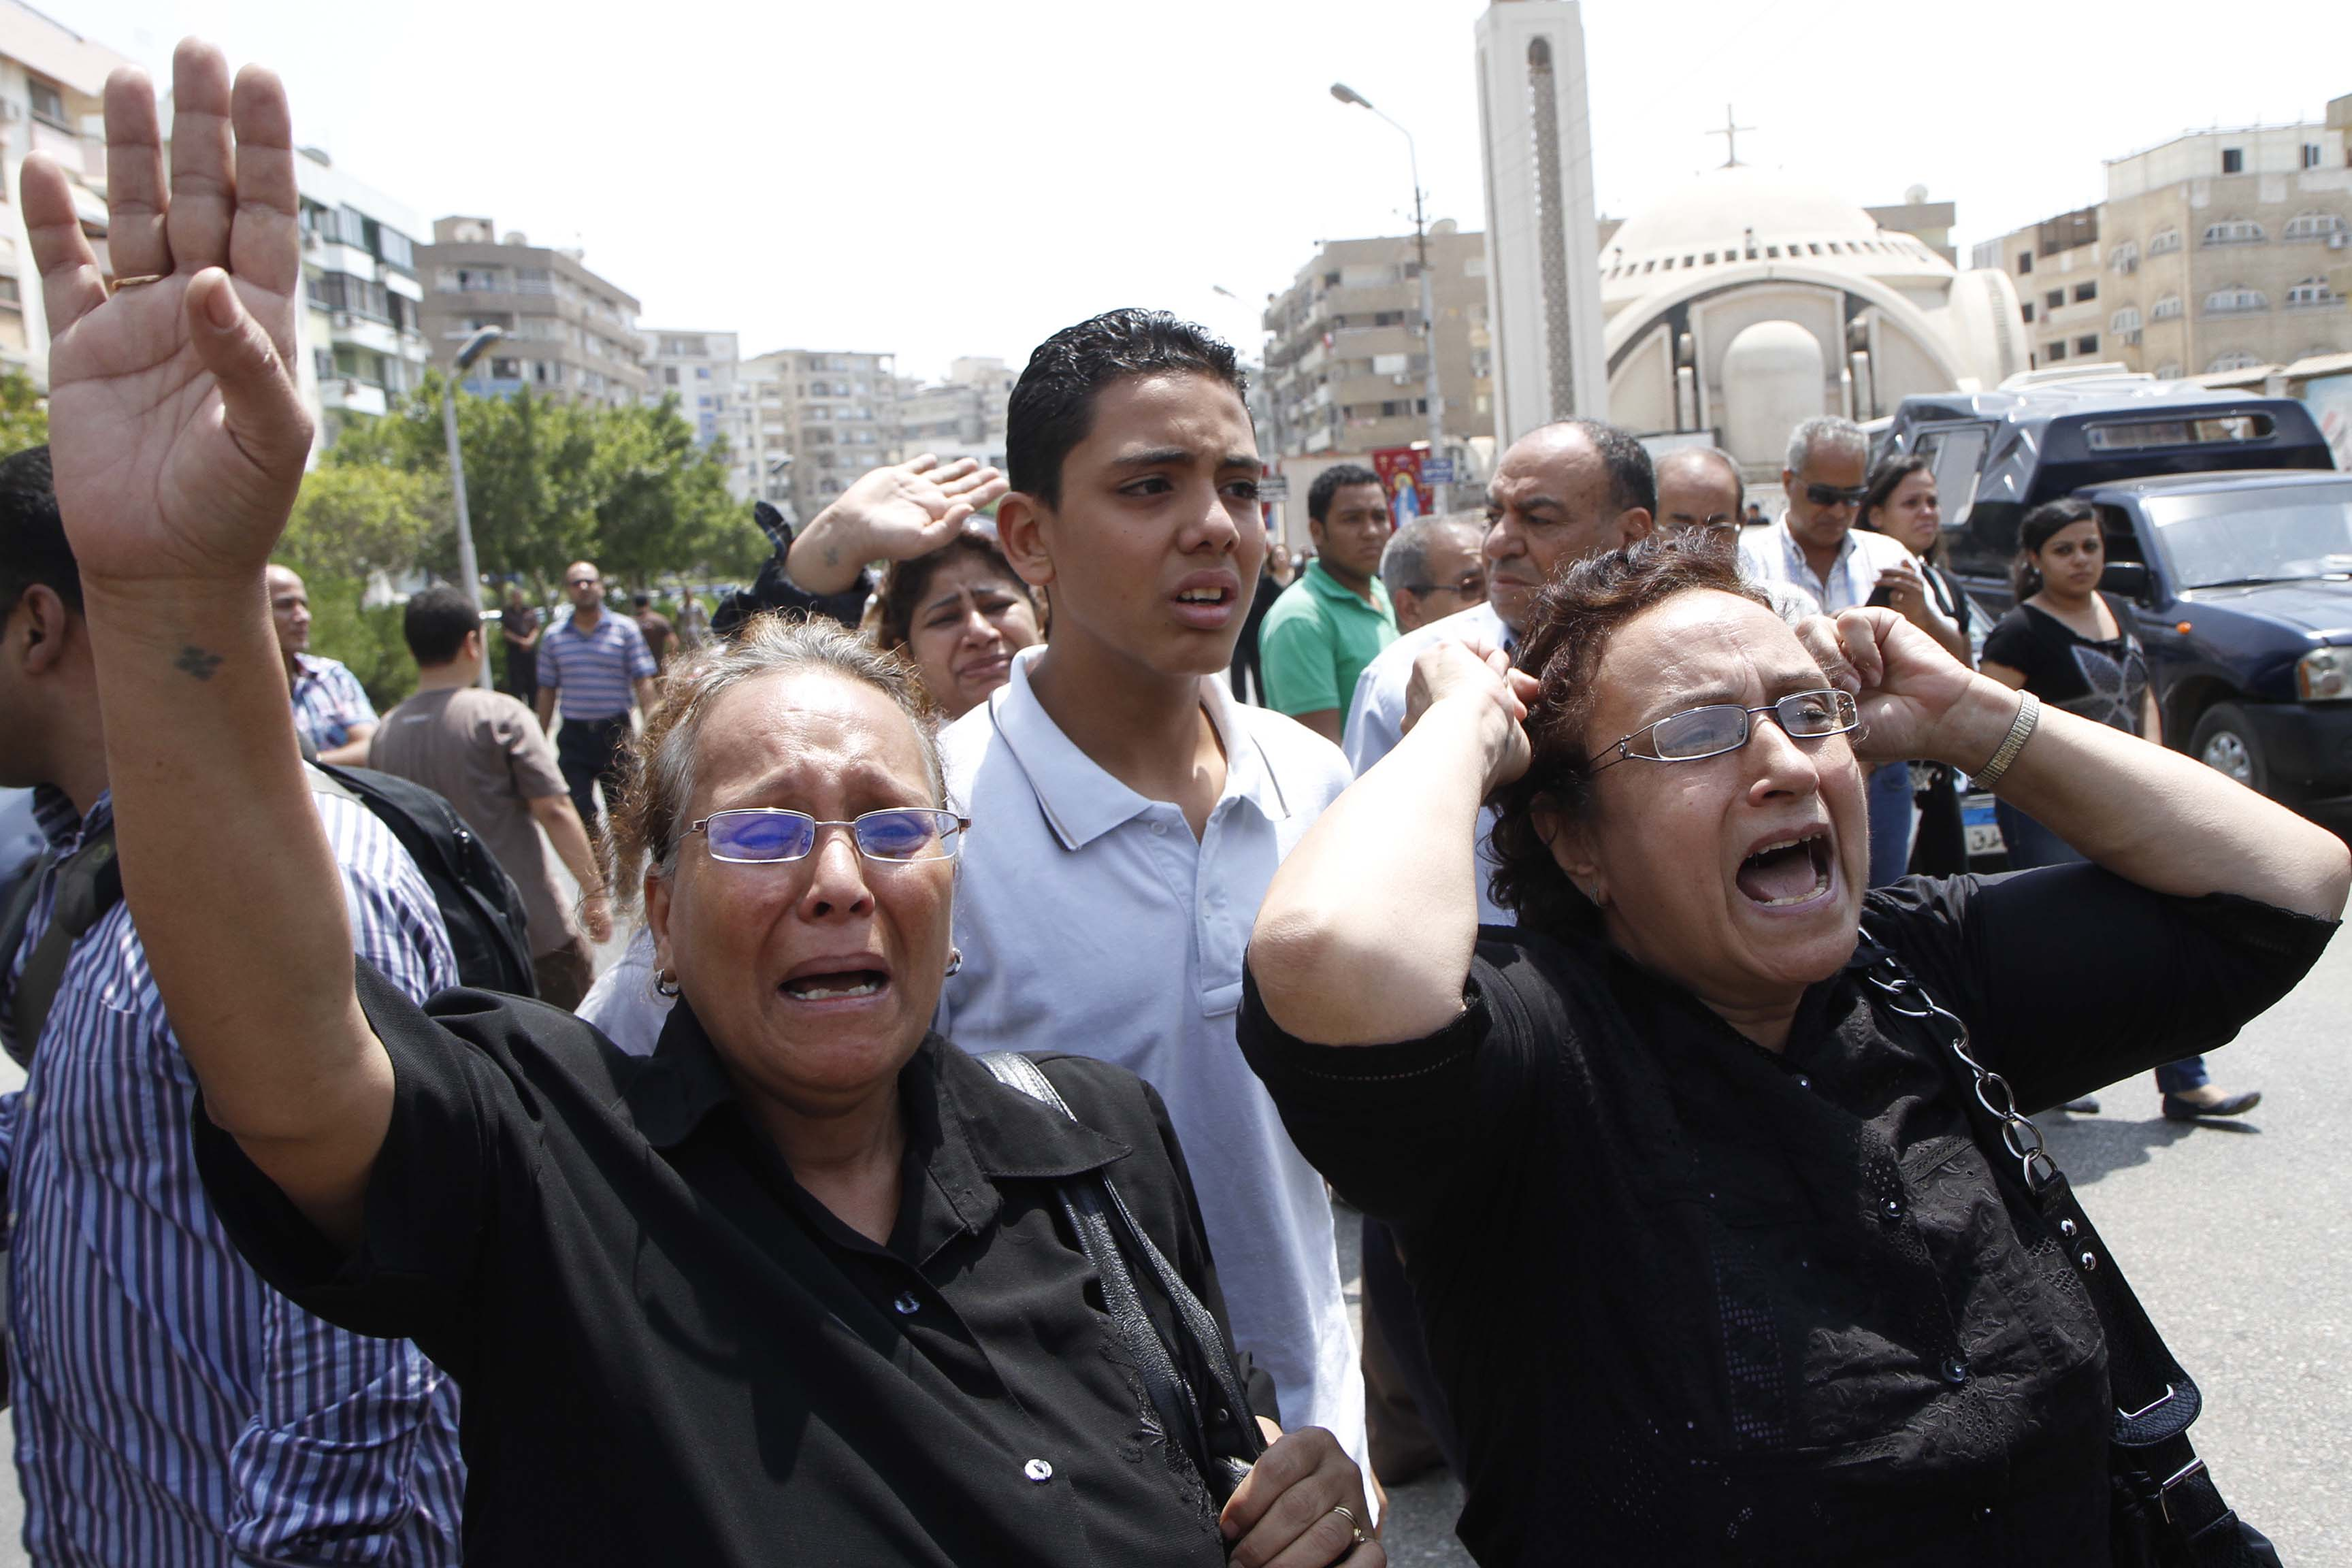 Egyptian relatives of supporters of ousted Islamist president Mohamed Morsi cry sitting outside the courthouse on Monday in Minya, after the court ordered the execution of 529 Morsi supporters after only two hearings (AFP PHOTO )